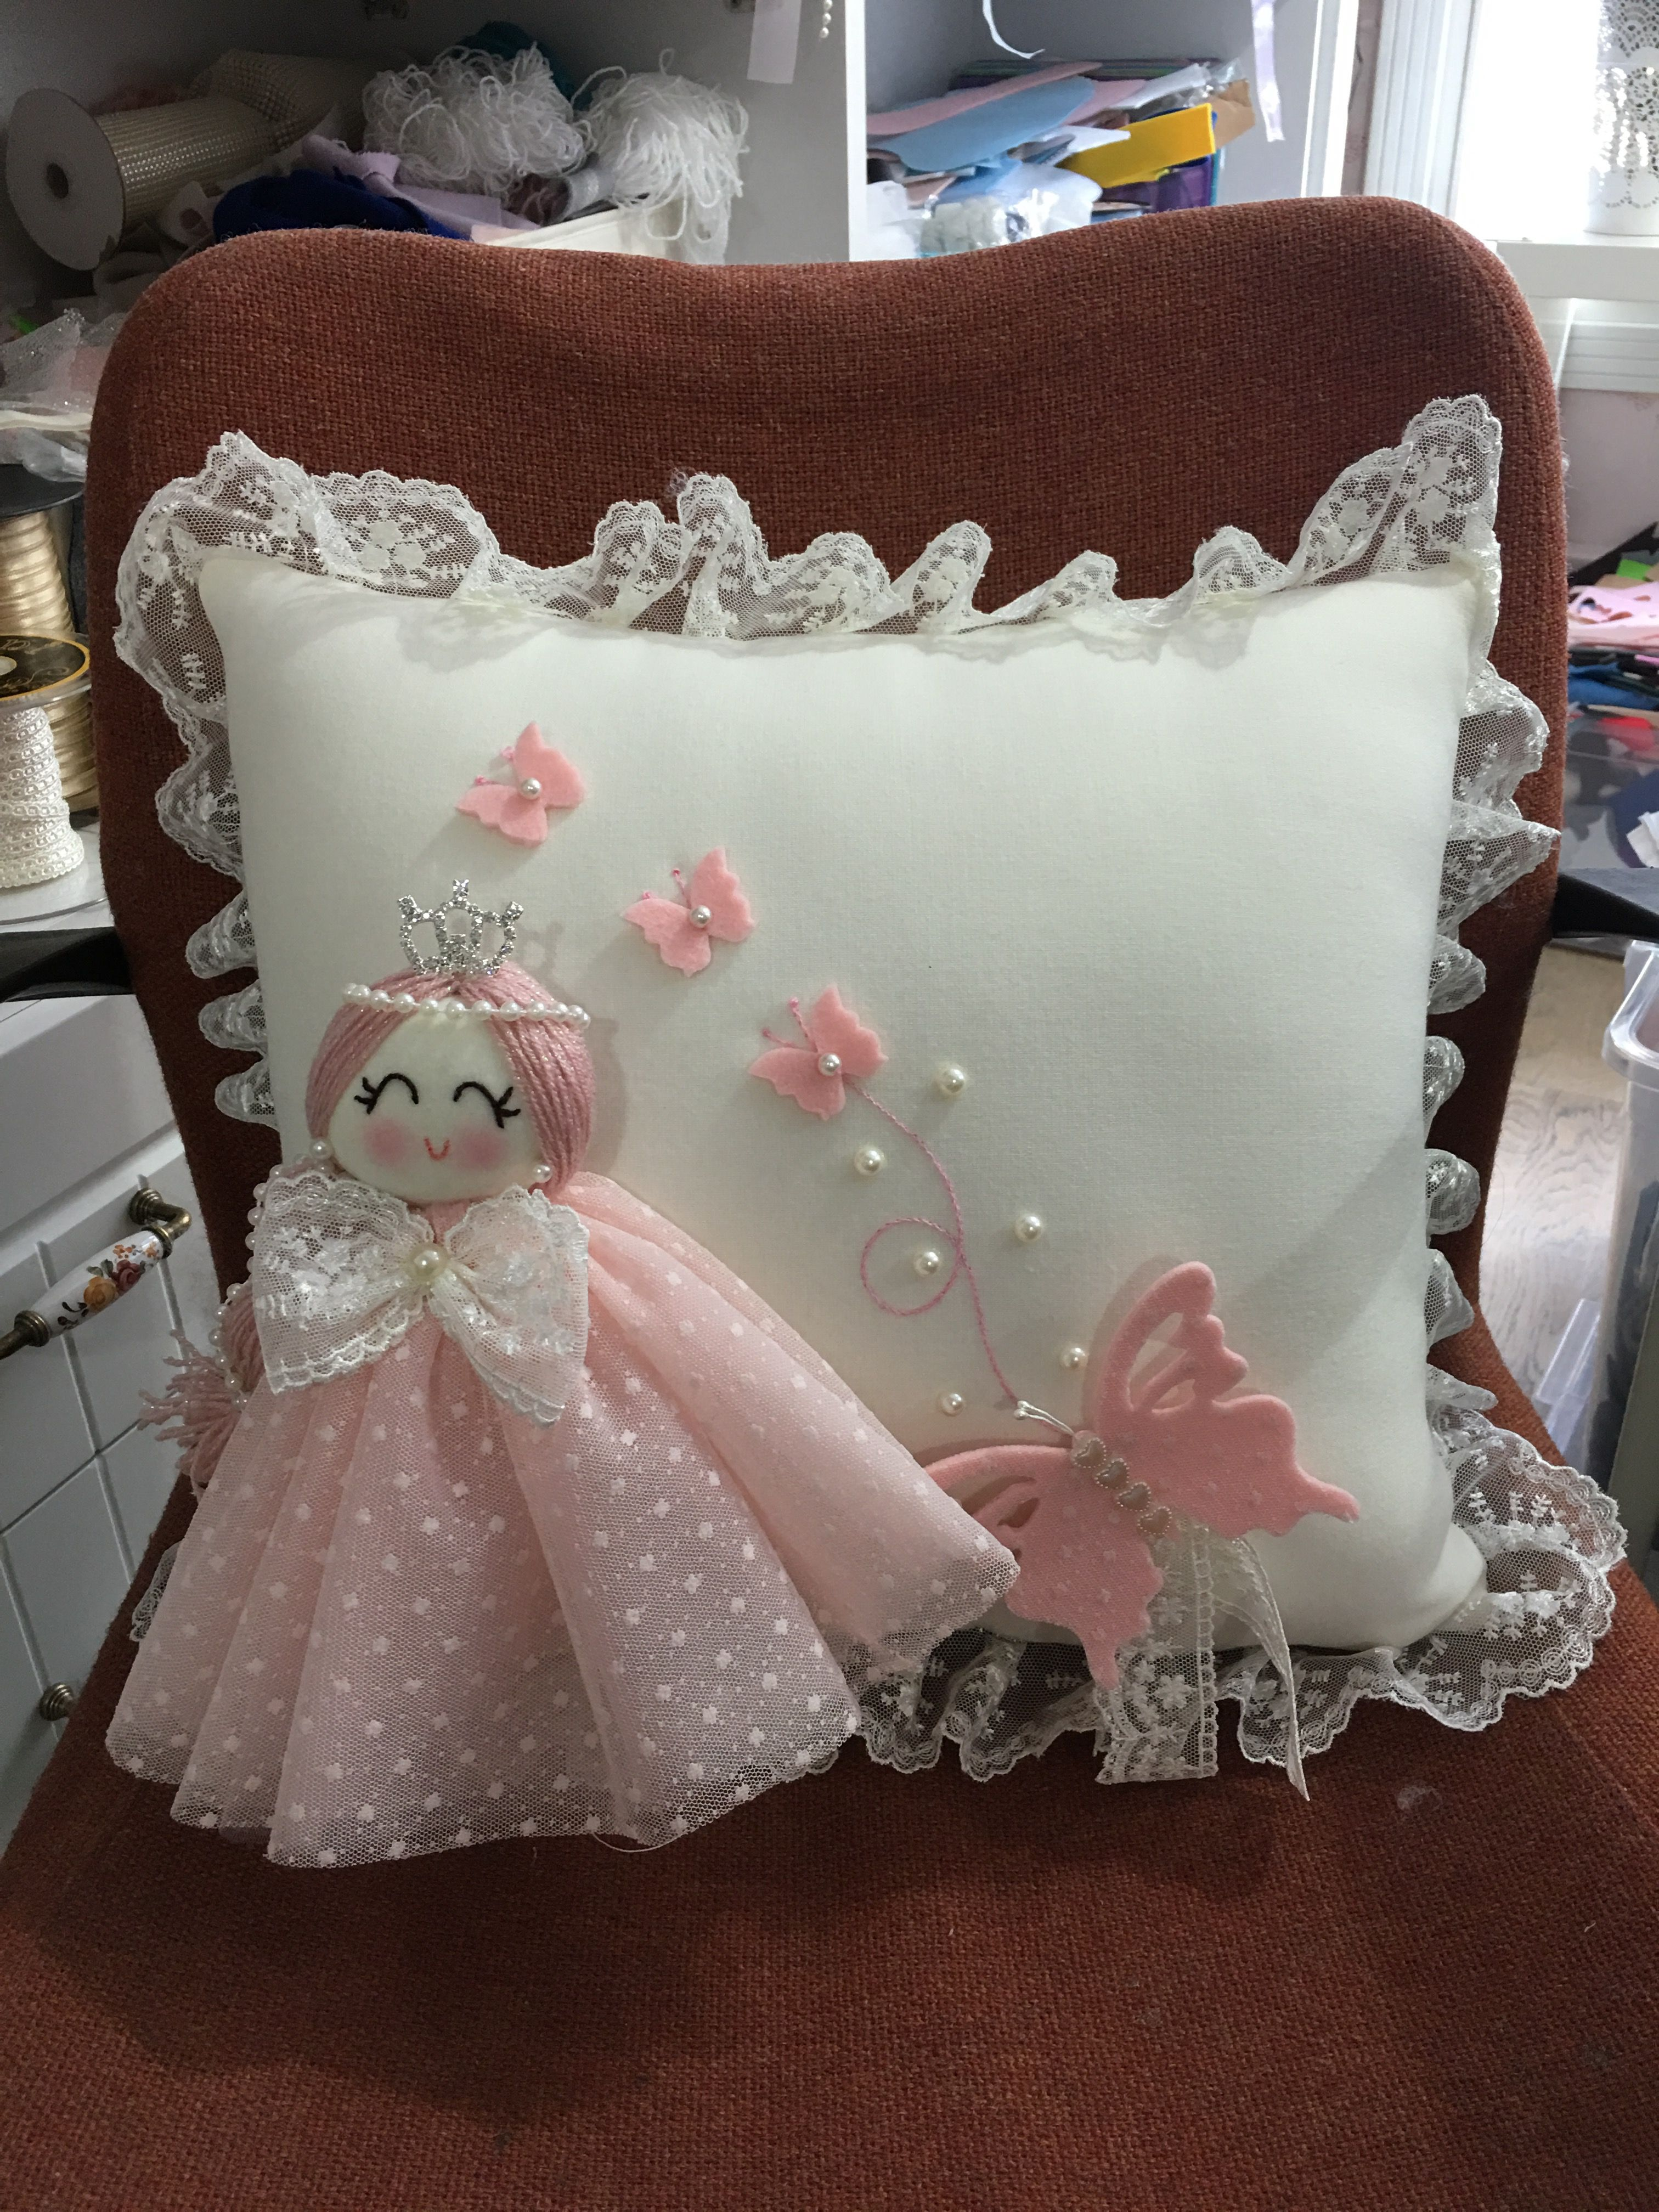 Cojines Decorativos Para Cama Yastık Cogines Pinterest Costura Bordado Y Bebe